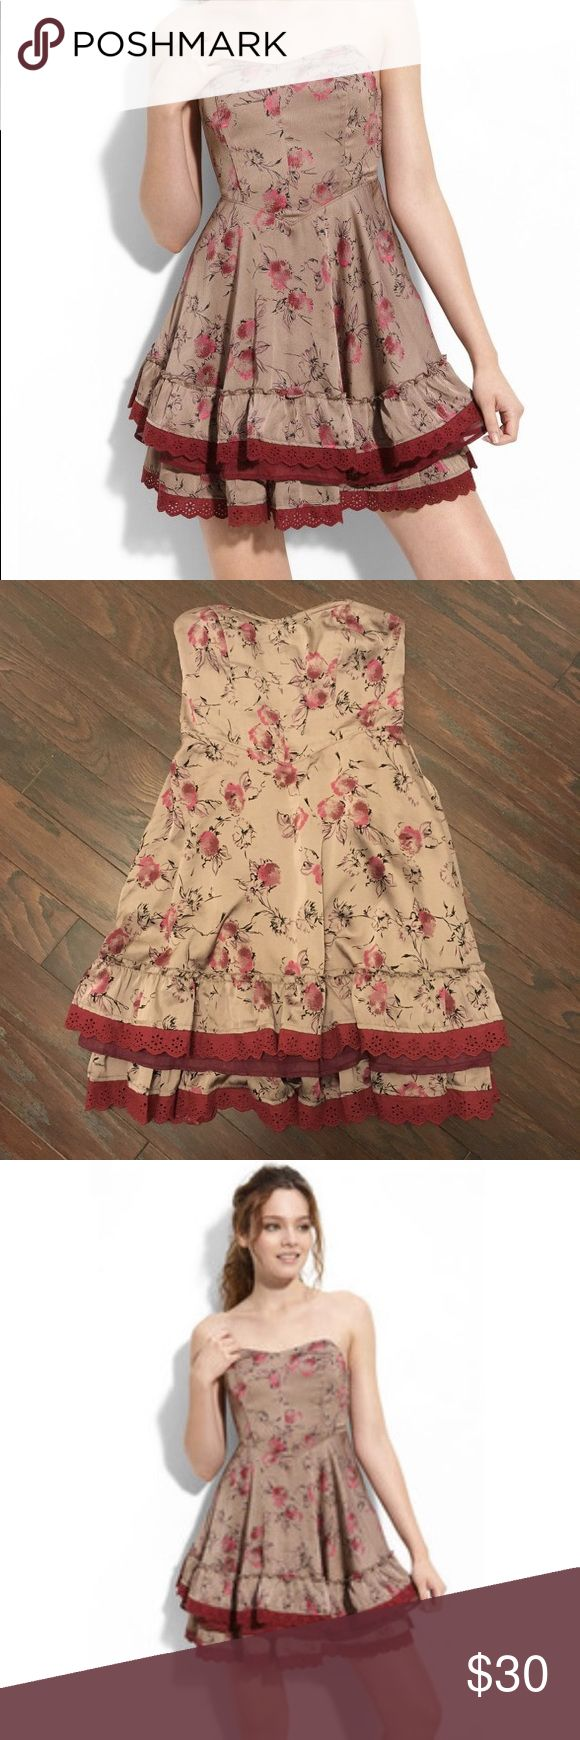 Free People 'Painter's' floral print strapless A beautiful dress designed with angled seaming in the waist, just above a tiered skirt trimmed with lace and ruffles. Light coffee brown with floral pattern and maroon lace trim. Worn once. Runs large. Fits more like a size 6. Free People Dresses Mini